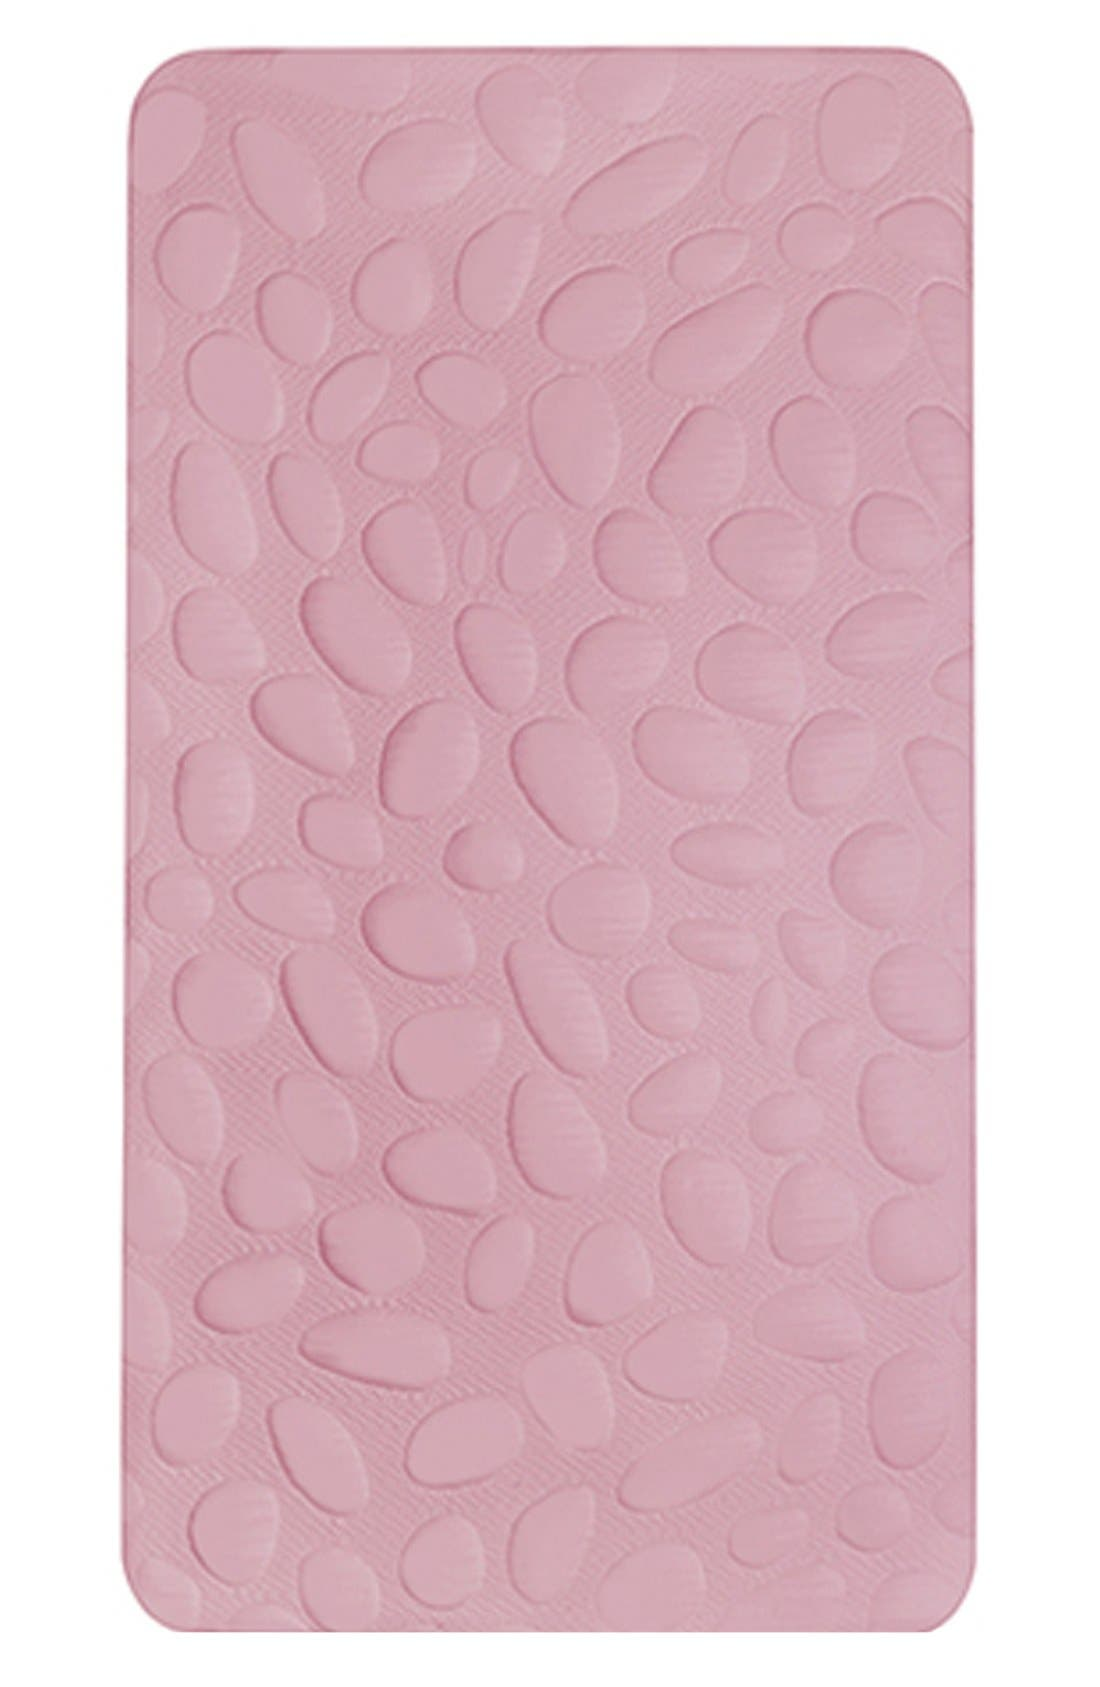 NOOK SLEEP SYSTEMS, 'Pebble Air' Crib Mattress, Main thumbnail 1, color, 650